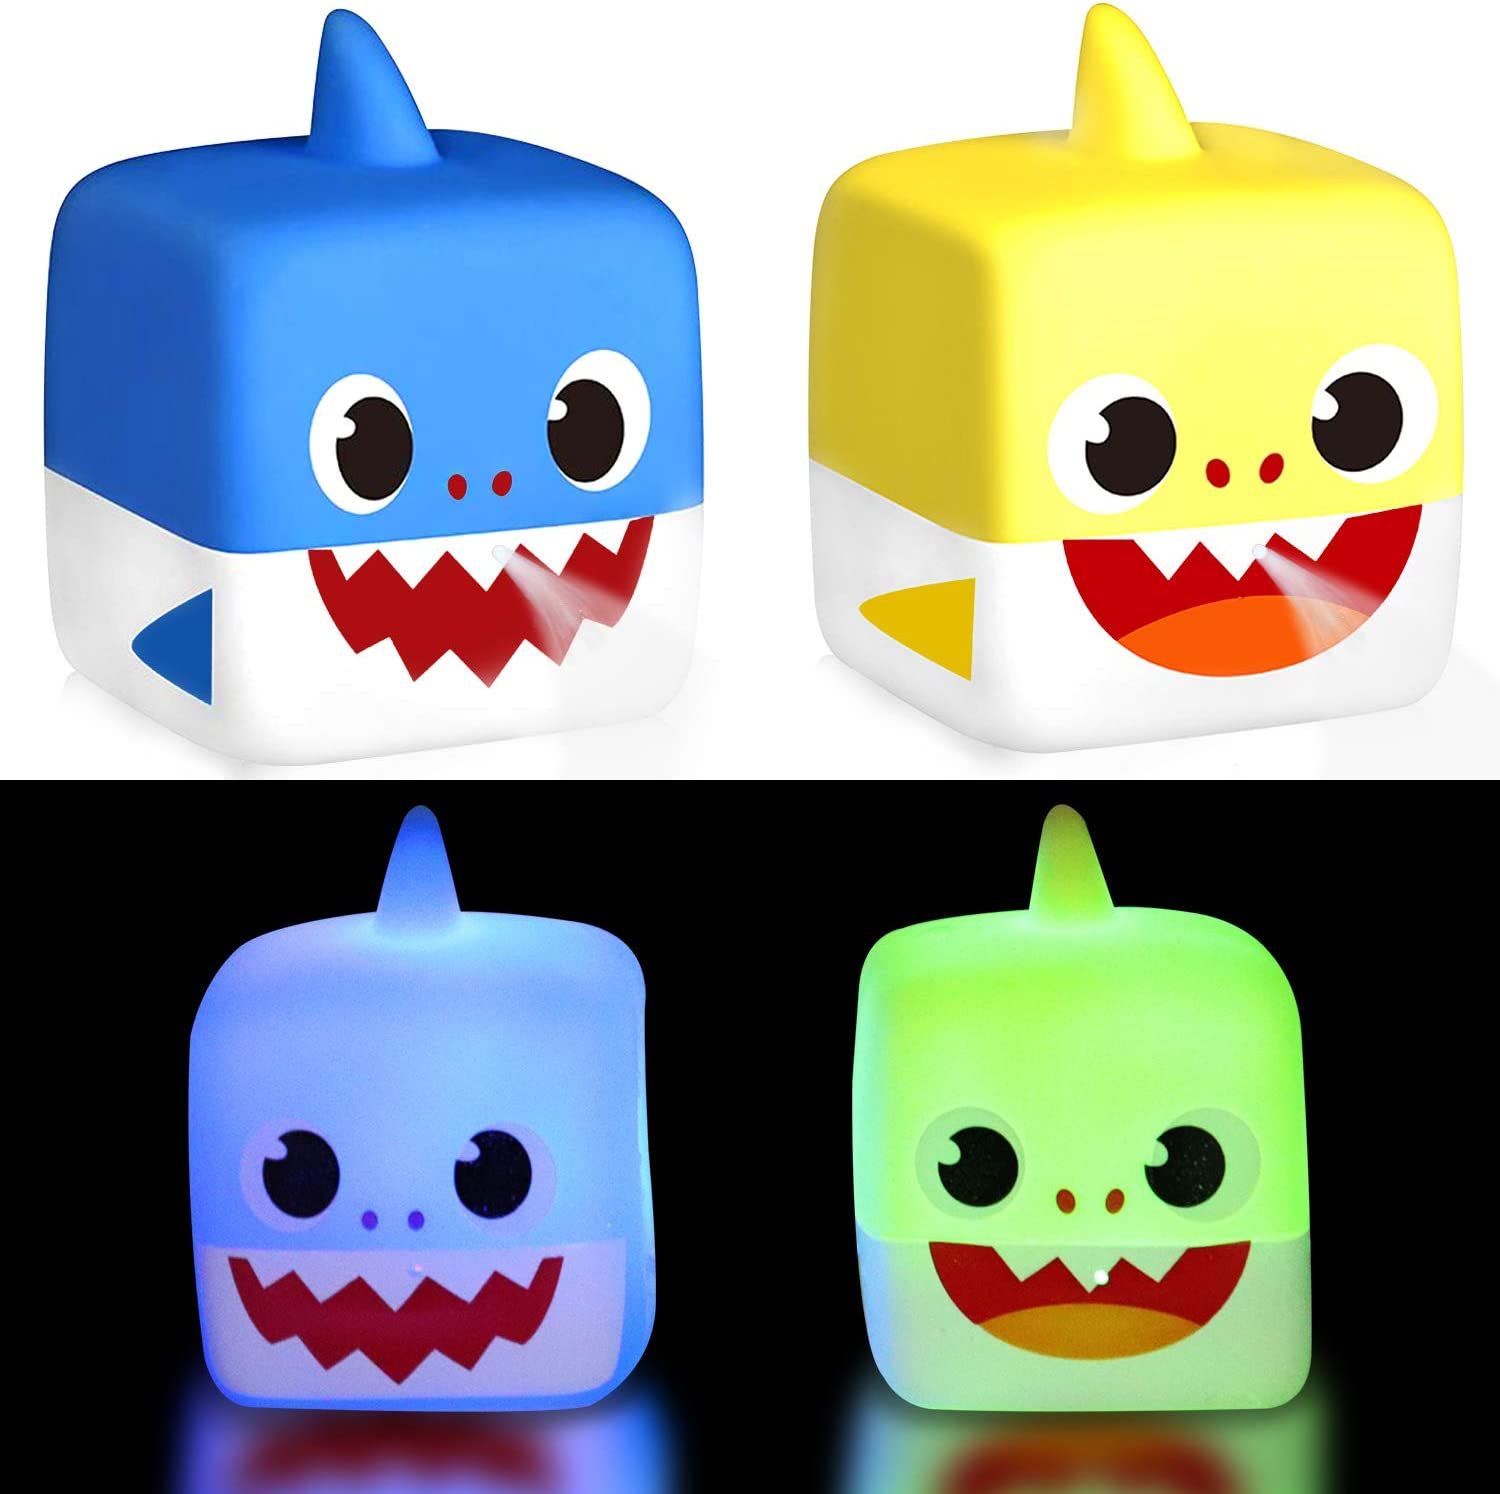 Tinabless Baby Sharks Light Up Bath Toys, Flashing Color in Water & Spray Water Rubber Floating Set for Kids Babies and Toddlers Bathtub Bathroom Shower Games Swimming Pool Party (2 Piece)